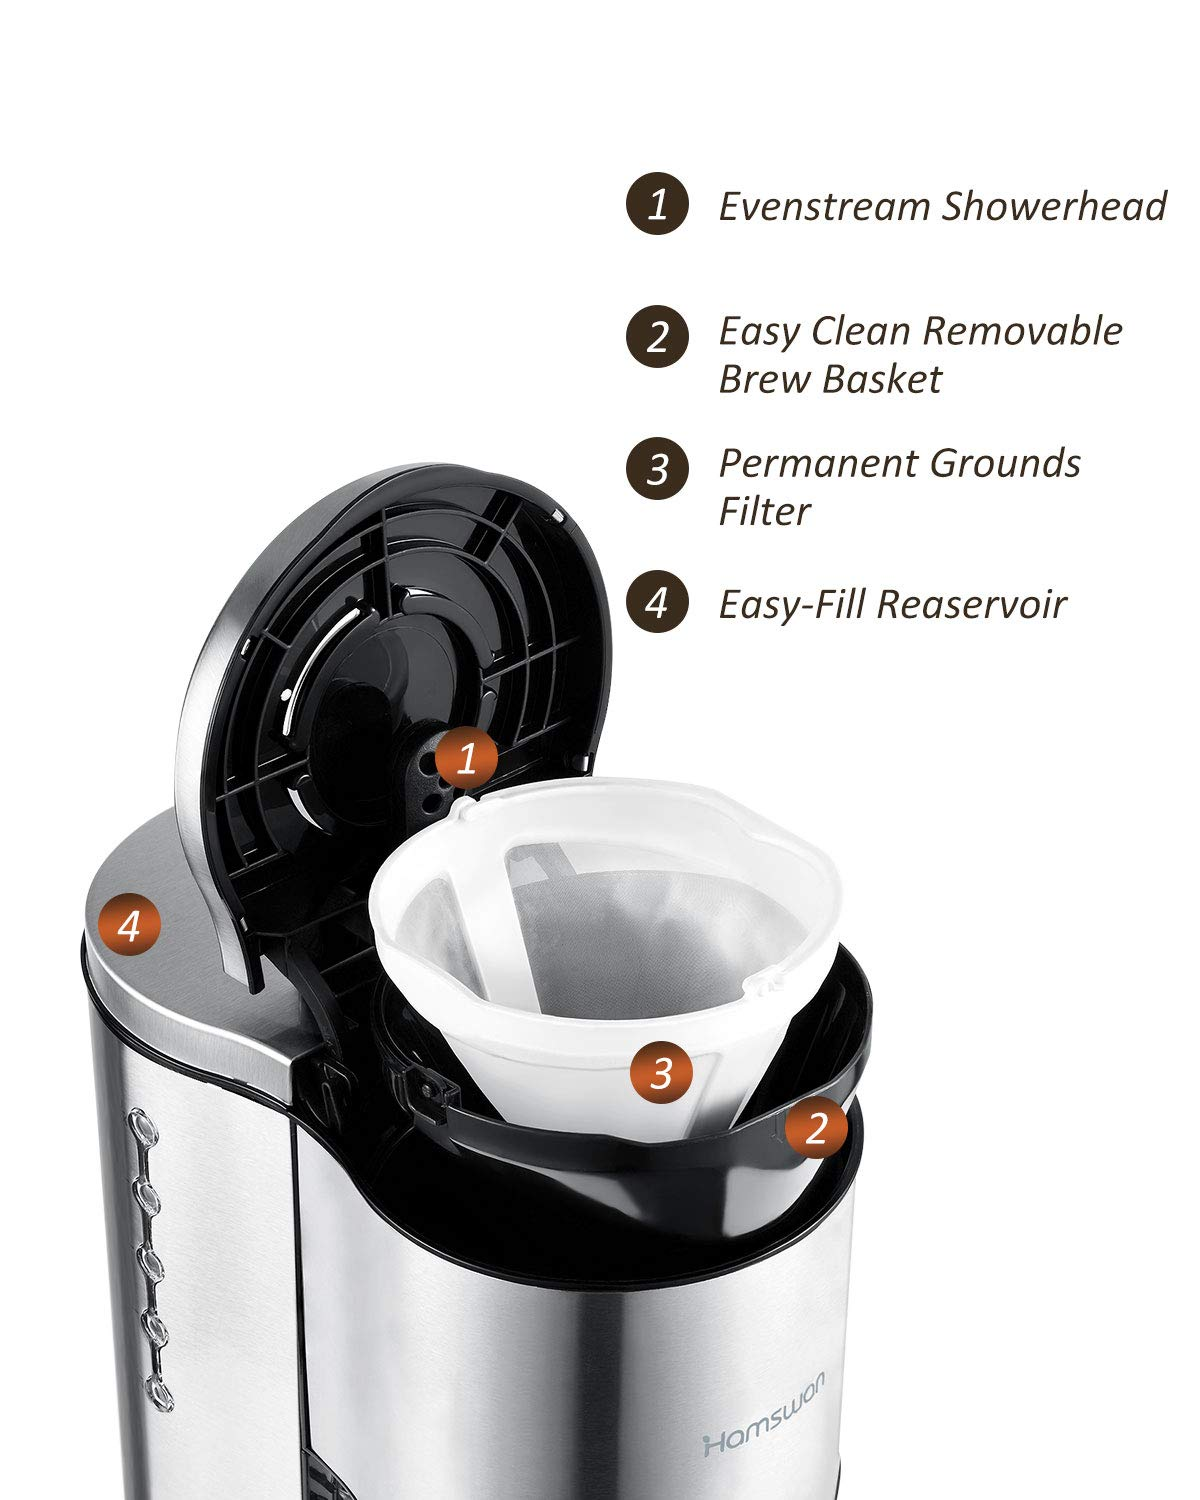 Drip Coffee Maker, HAMSWAN AD-103 Stainless Steel Coffee Maker Coffee Pot, Small 10 Cup Coffee Machine with Glass Thermal Carafe, Insulated, Keep Warm, Automatic Shut Off for Single Serve & House Use by HAMSWAN (Image #4)